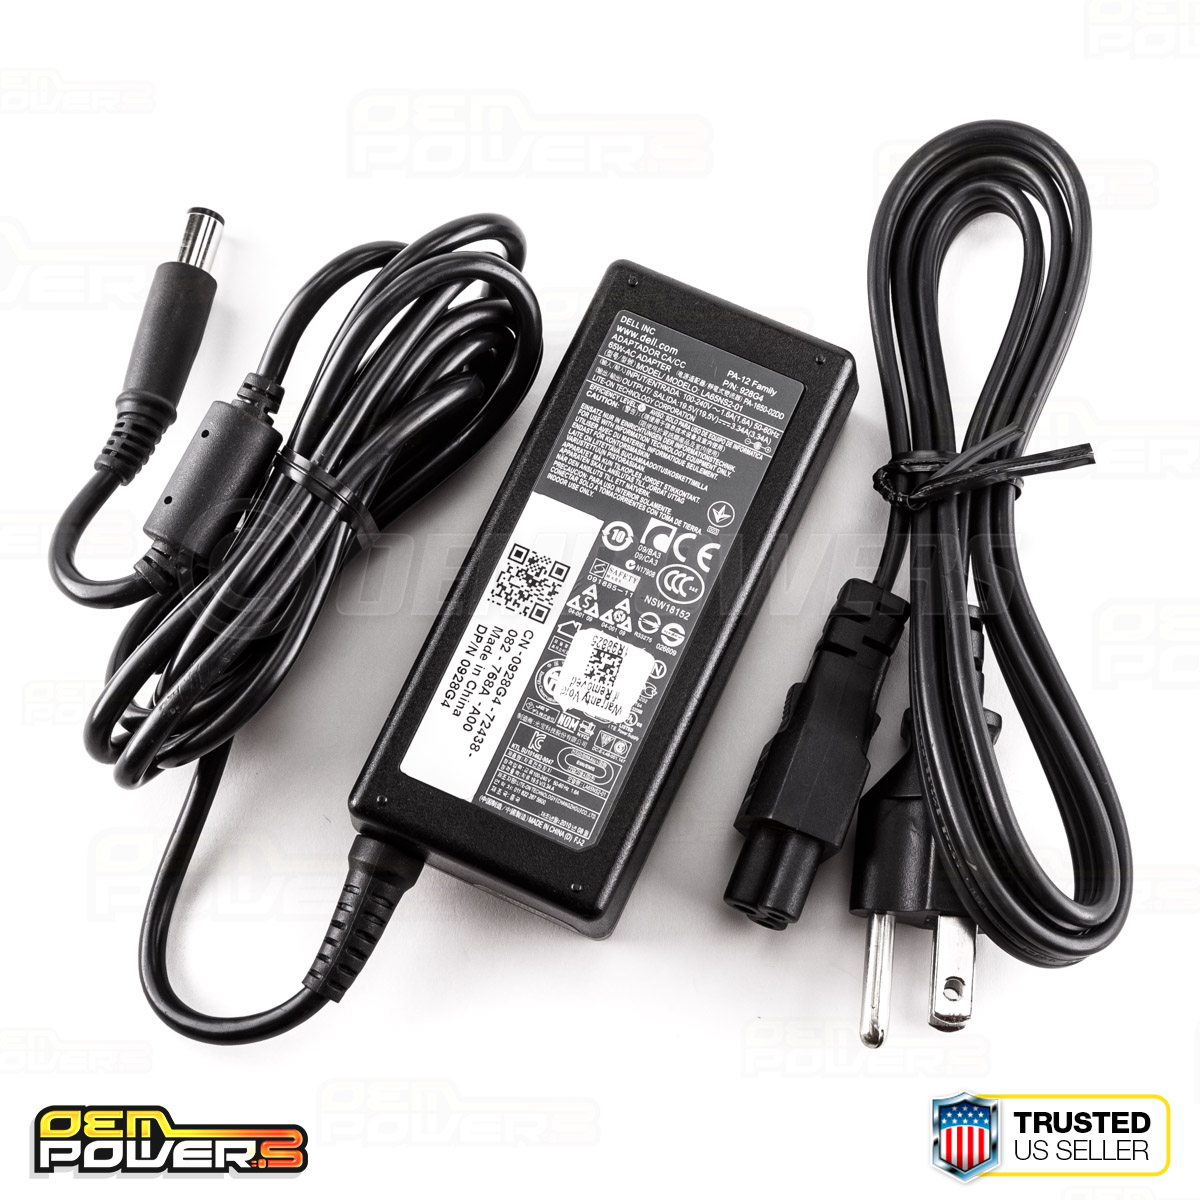 Details about GENUINE DELL LAPTOP PA-12 Family 65W AC Power Adapter DP/N  0928G4/06TM1C/09RN2C